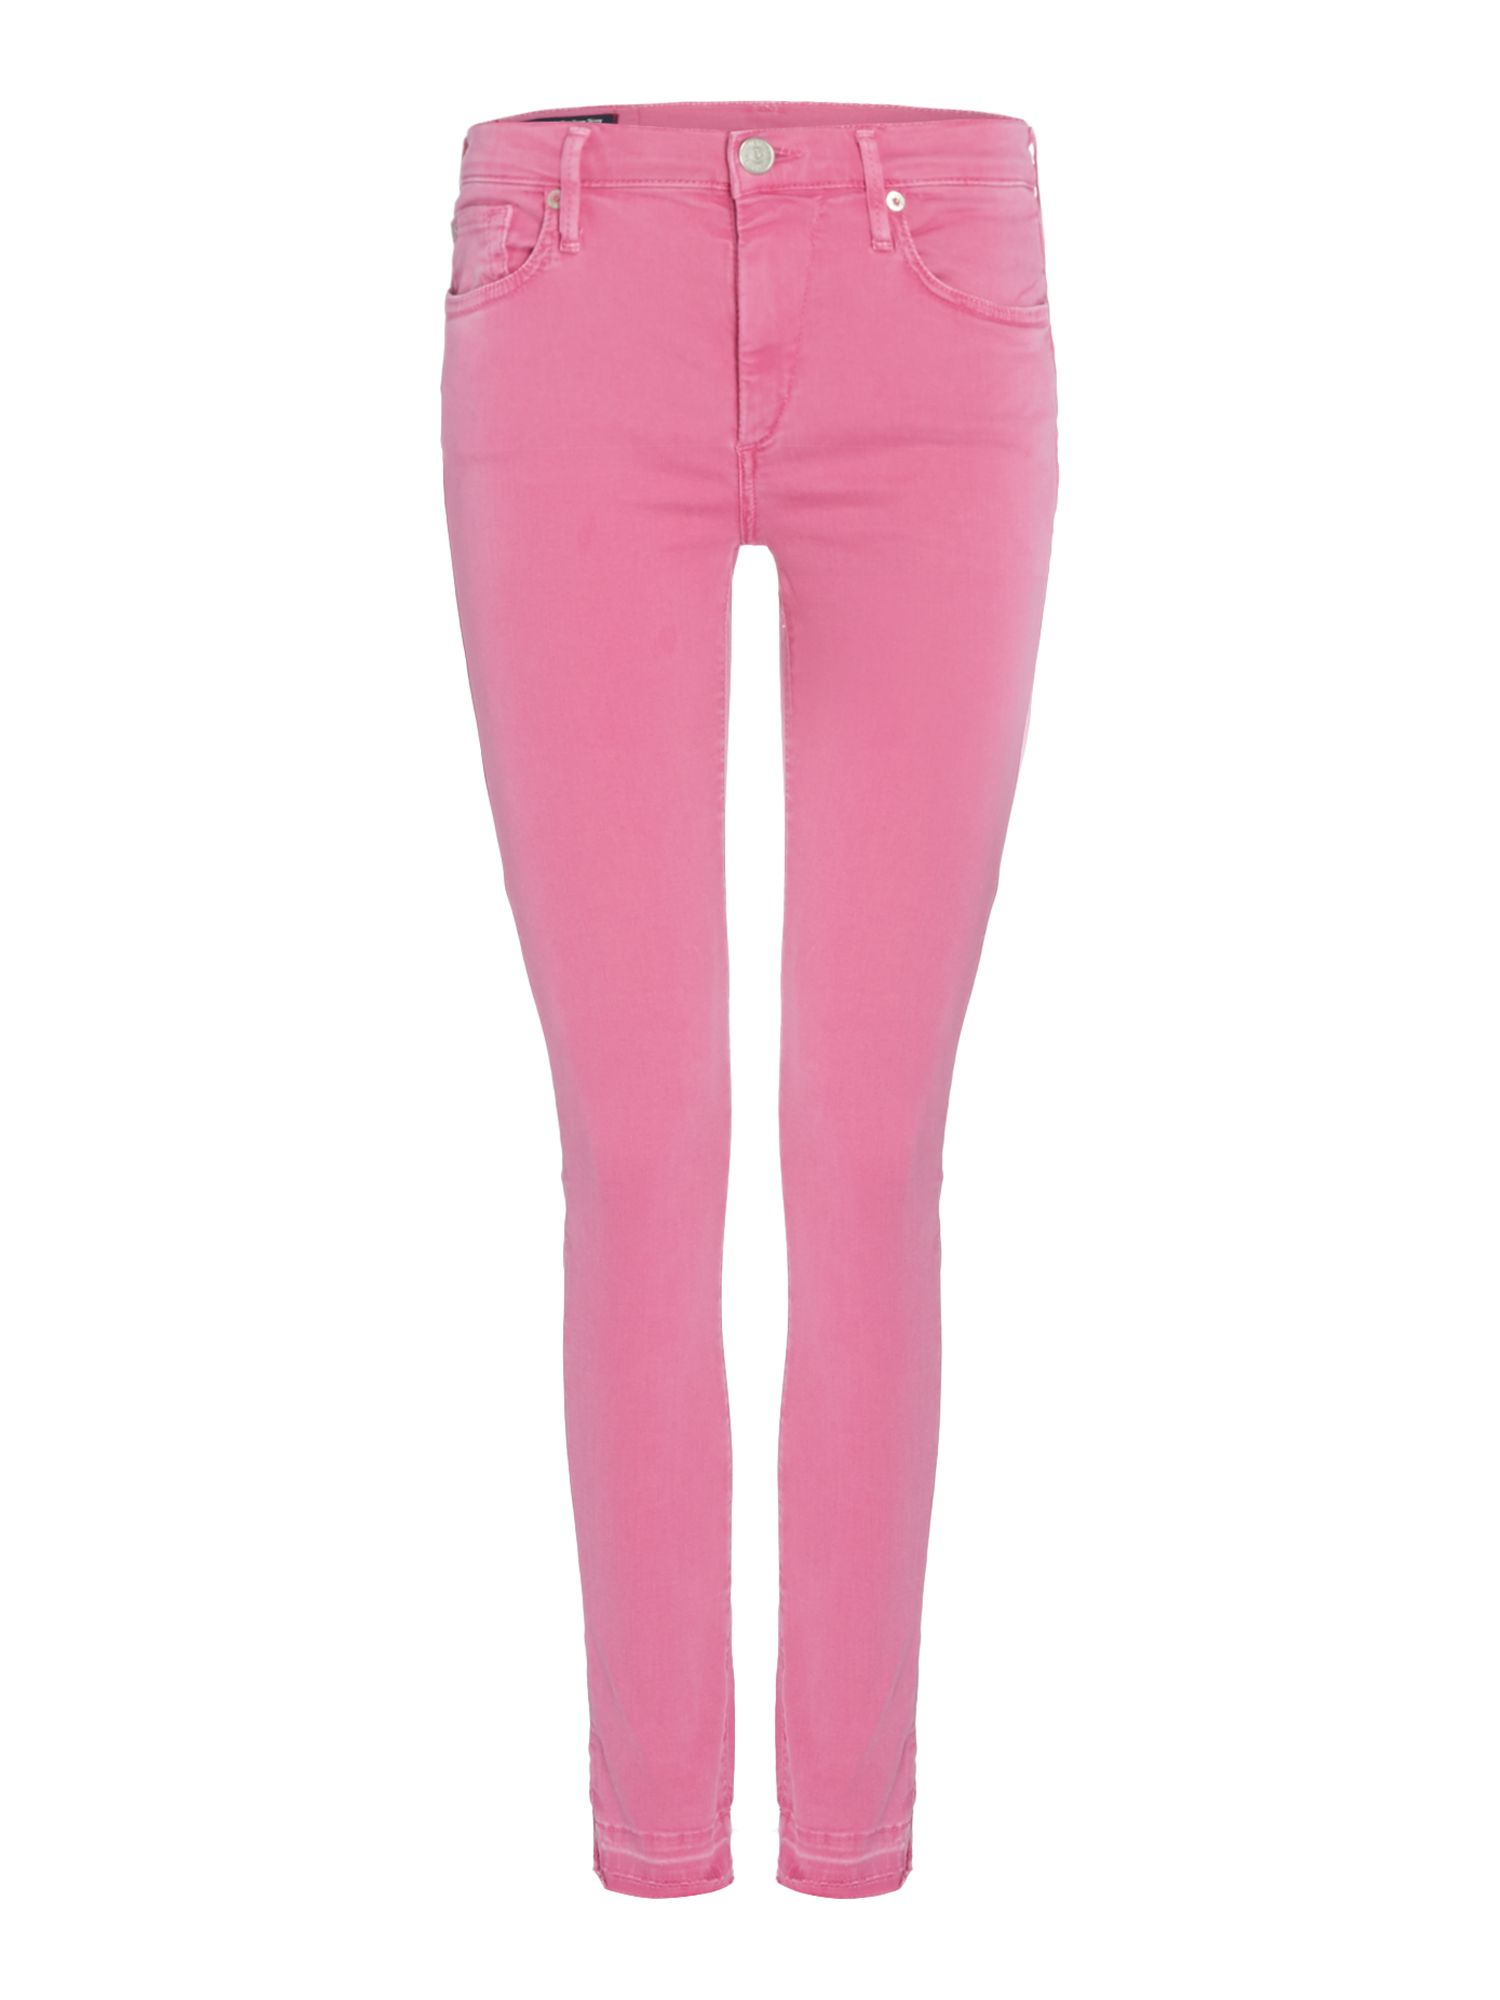 Halle Cropped With Raw Hem In Pink, Pink